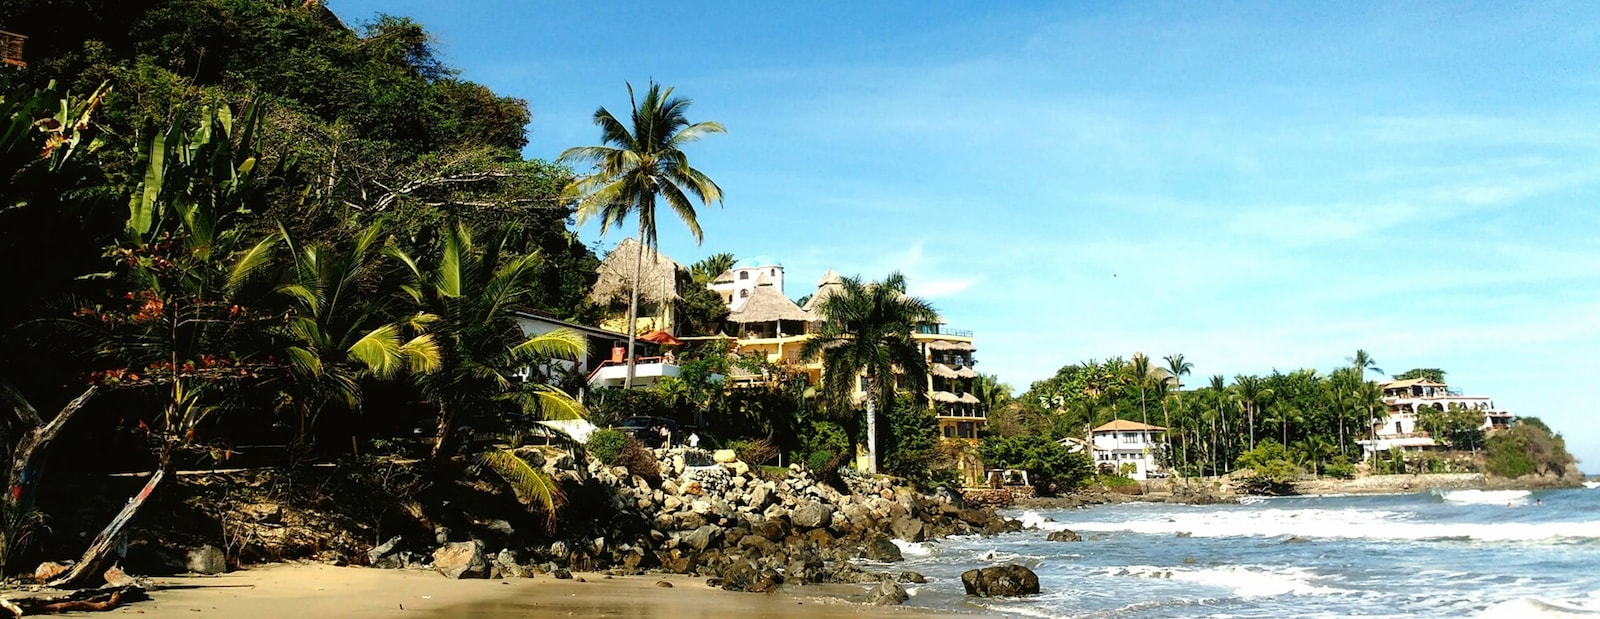 Vacation rentals in Las Glorias Beach